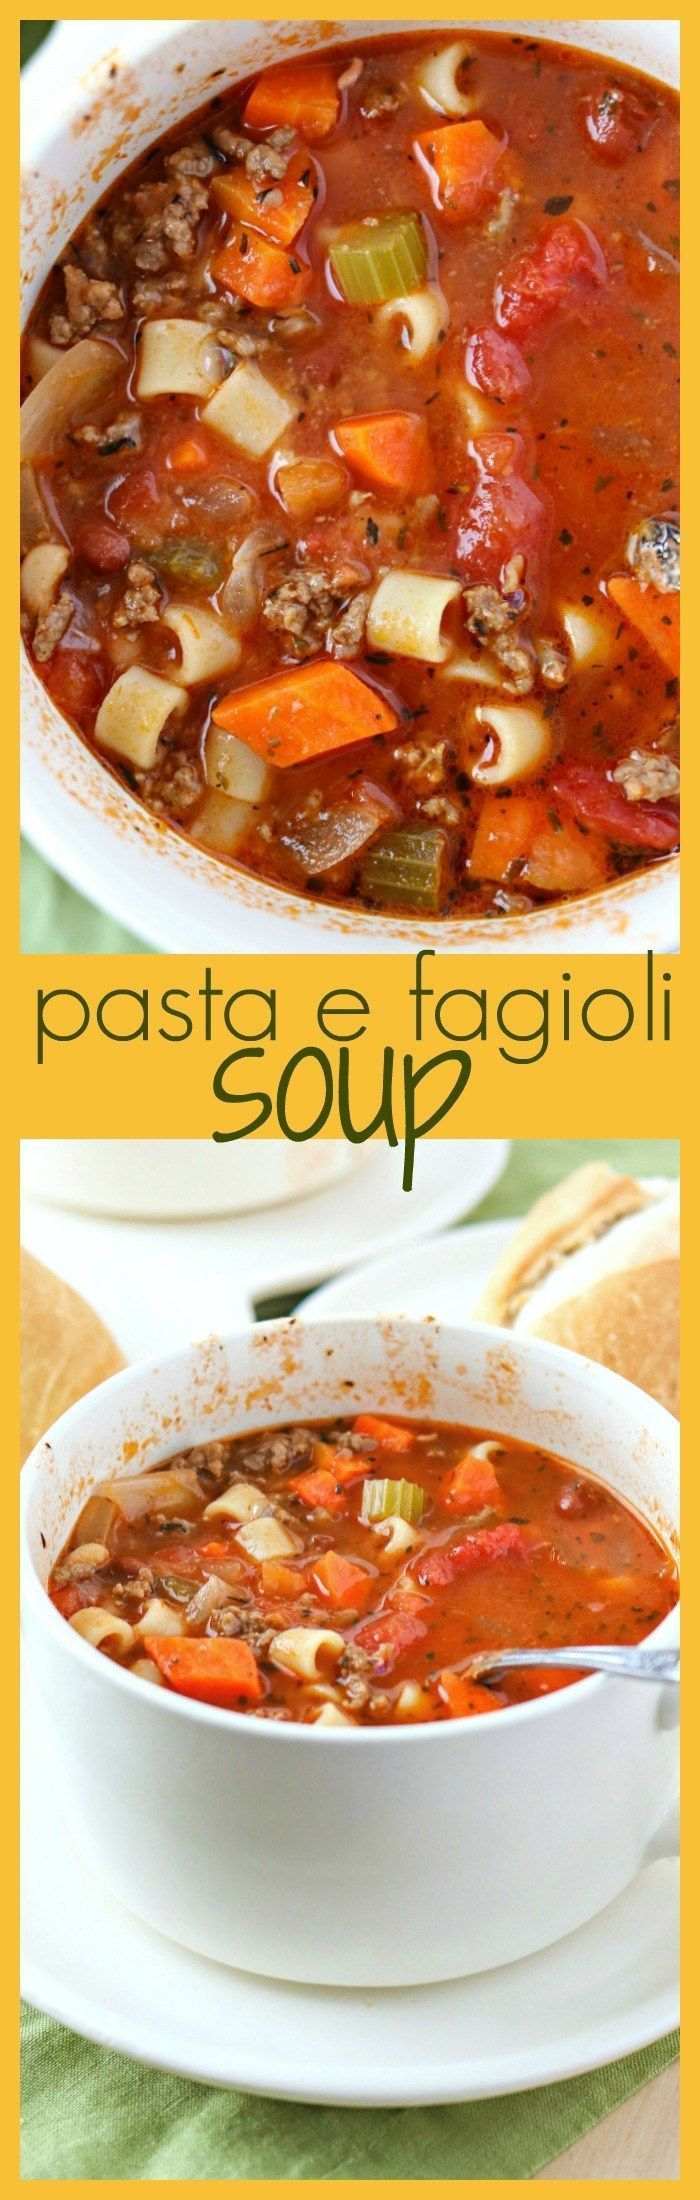 Pasta e Fagioli Soup - A classic Italian soup that is made with a tomato broth, ground beef, pasta, and packed-full of veggies and beans. All of these ingredients transform this into an irresistible dish that is so comforting and warms the heart. And stom